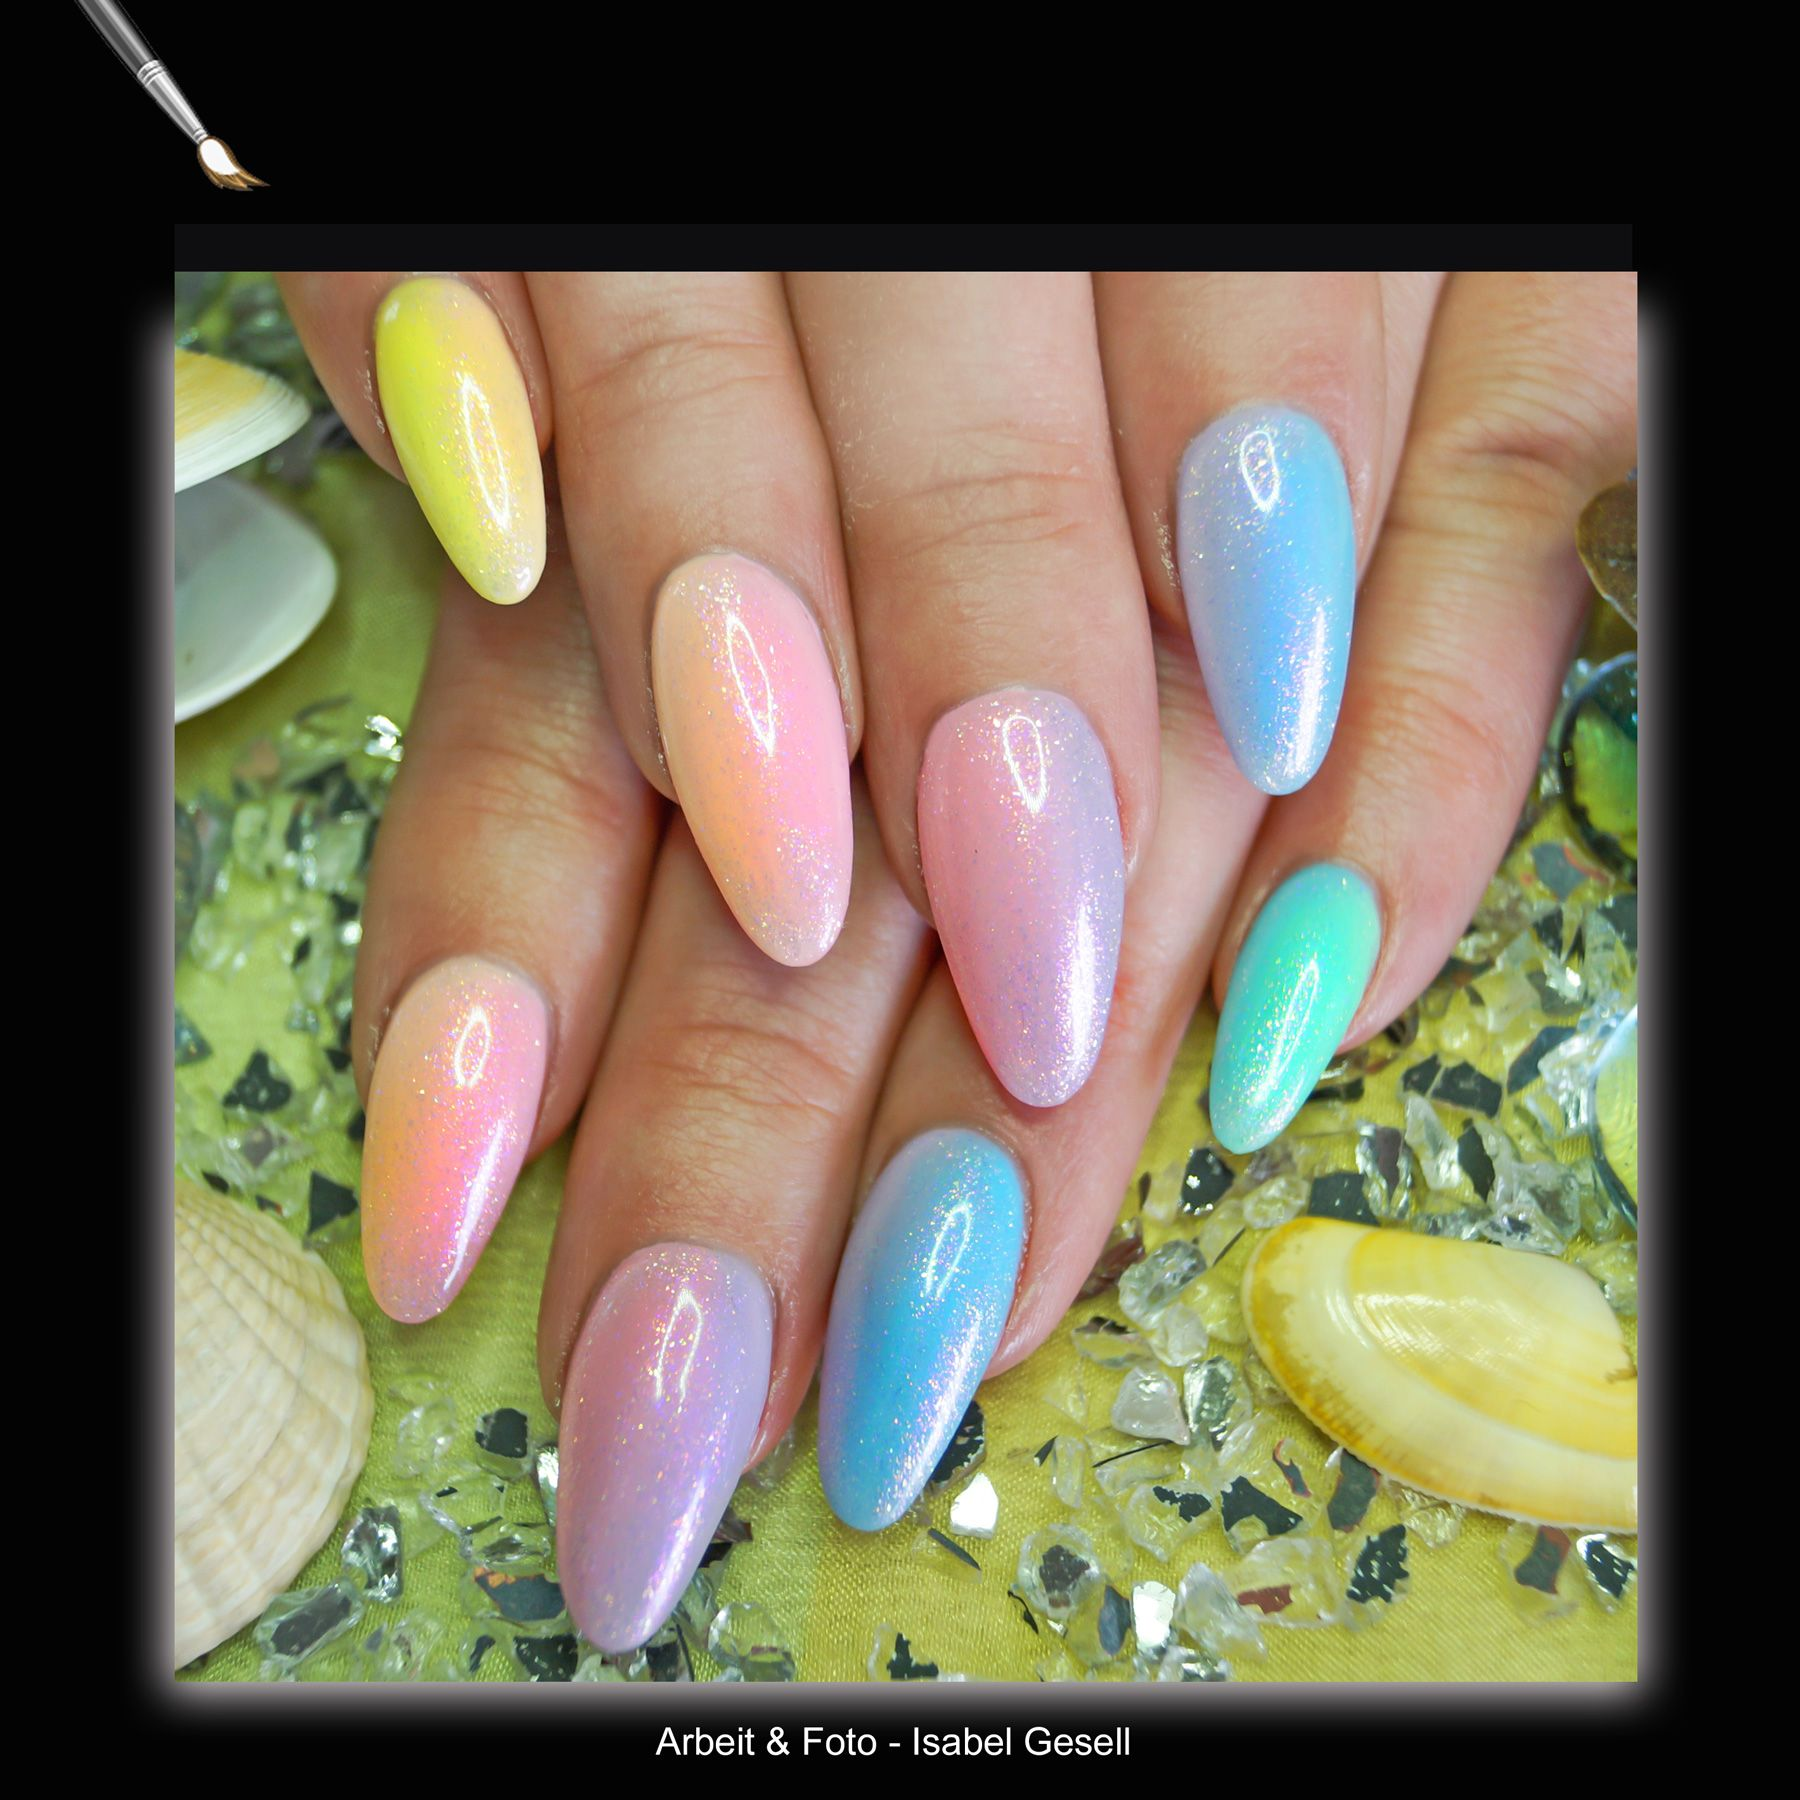 the latest mermaid UV Gel rainbow nails trend! http://www.vw-e.de ...